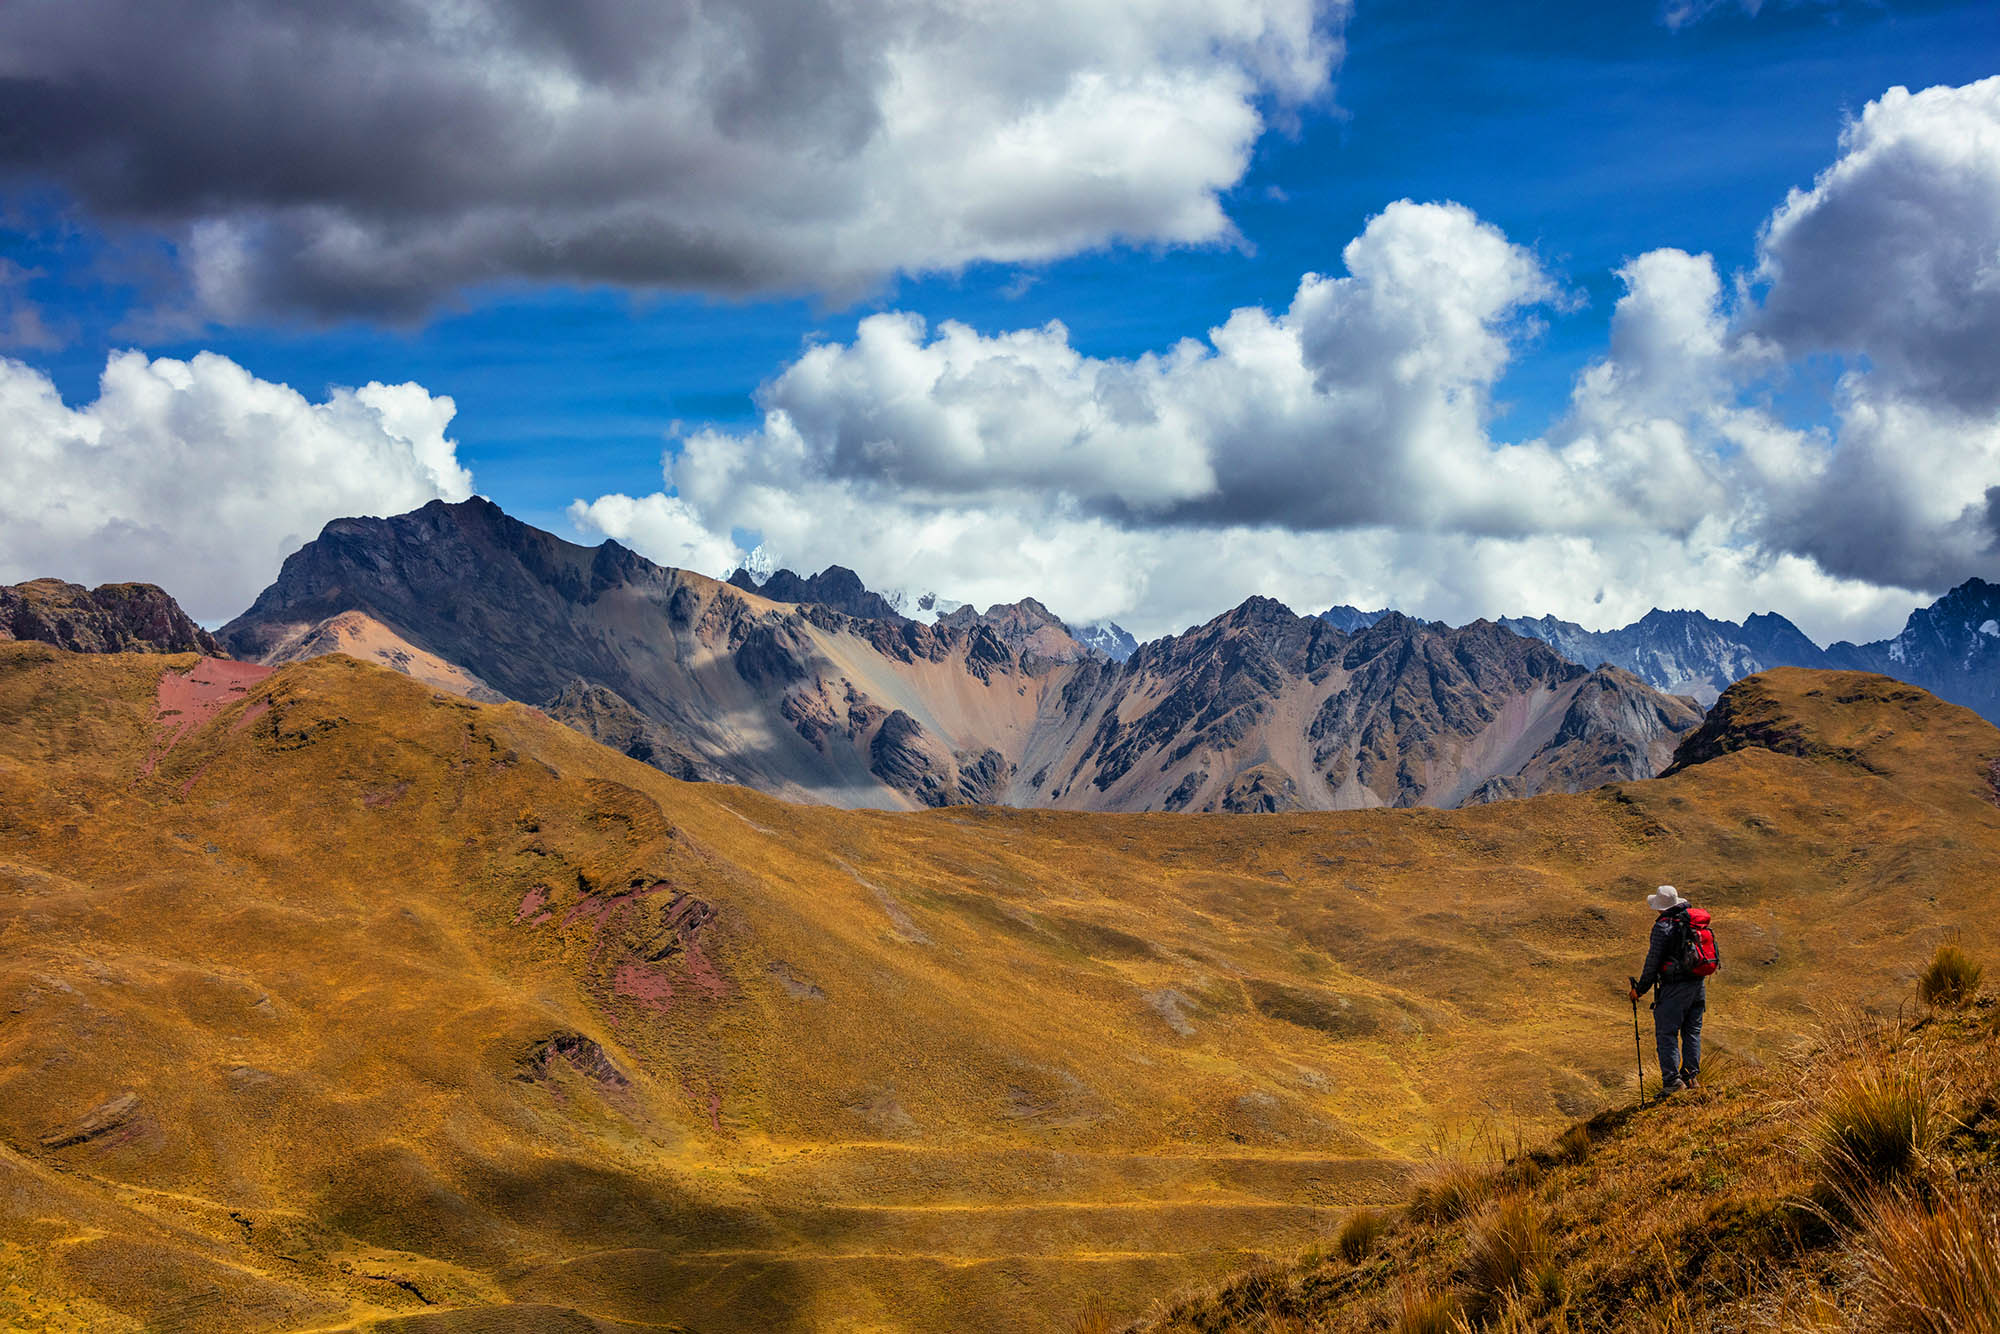 Jaw-dropping images from a desolate mountain trek in Peru    Matador Network